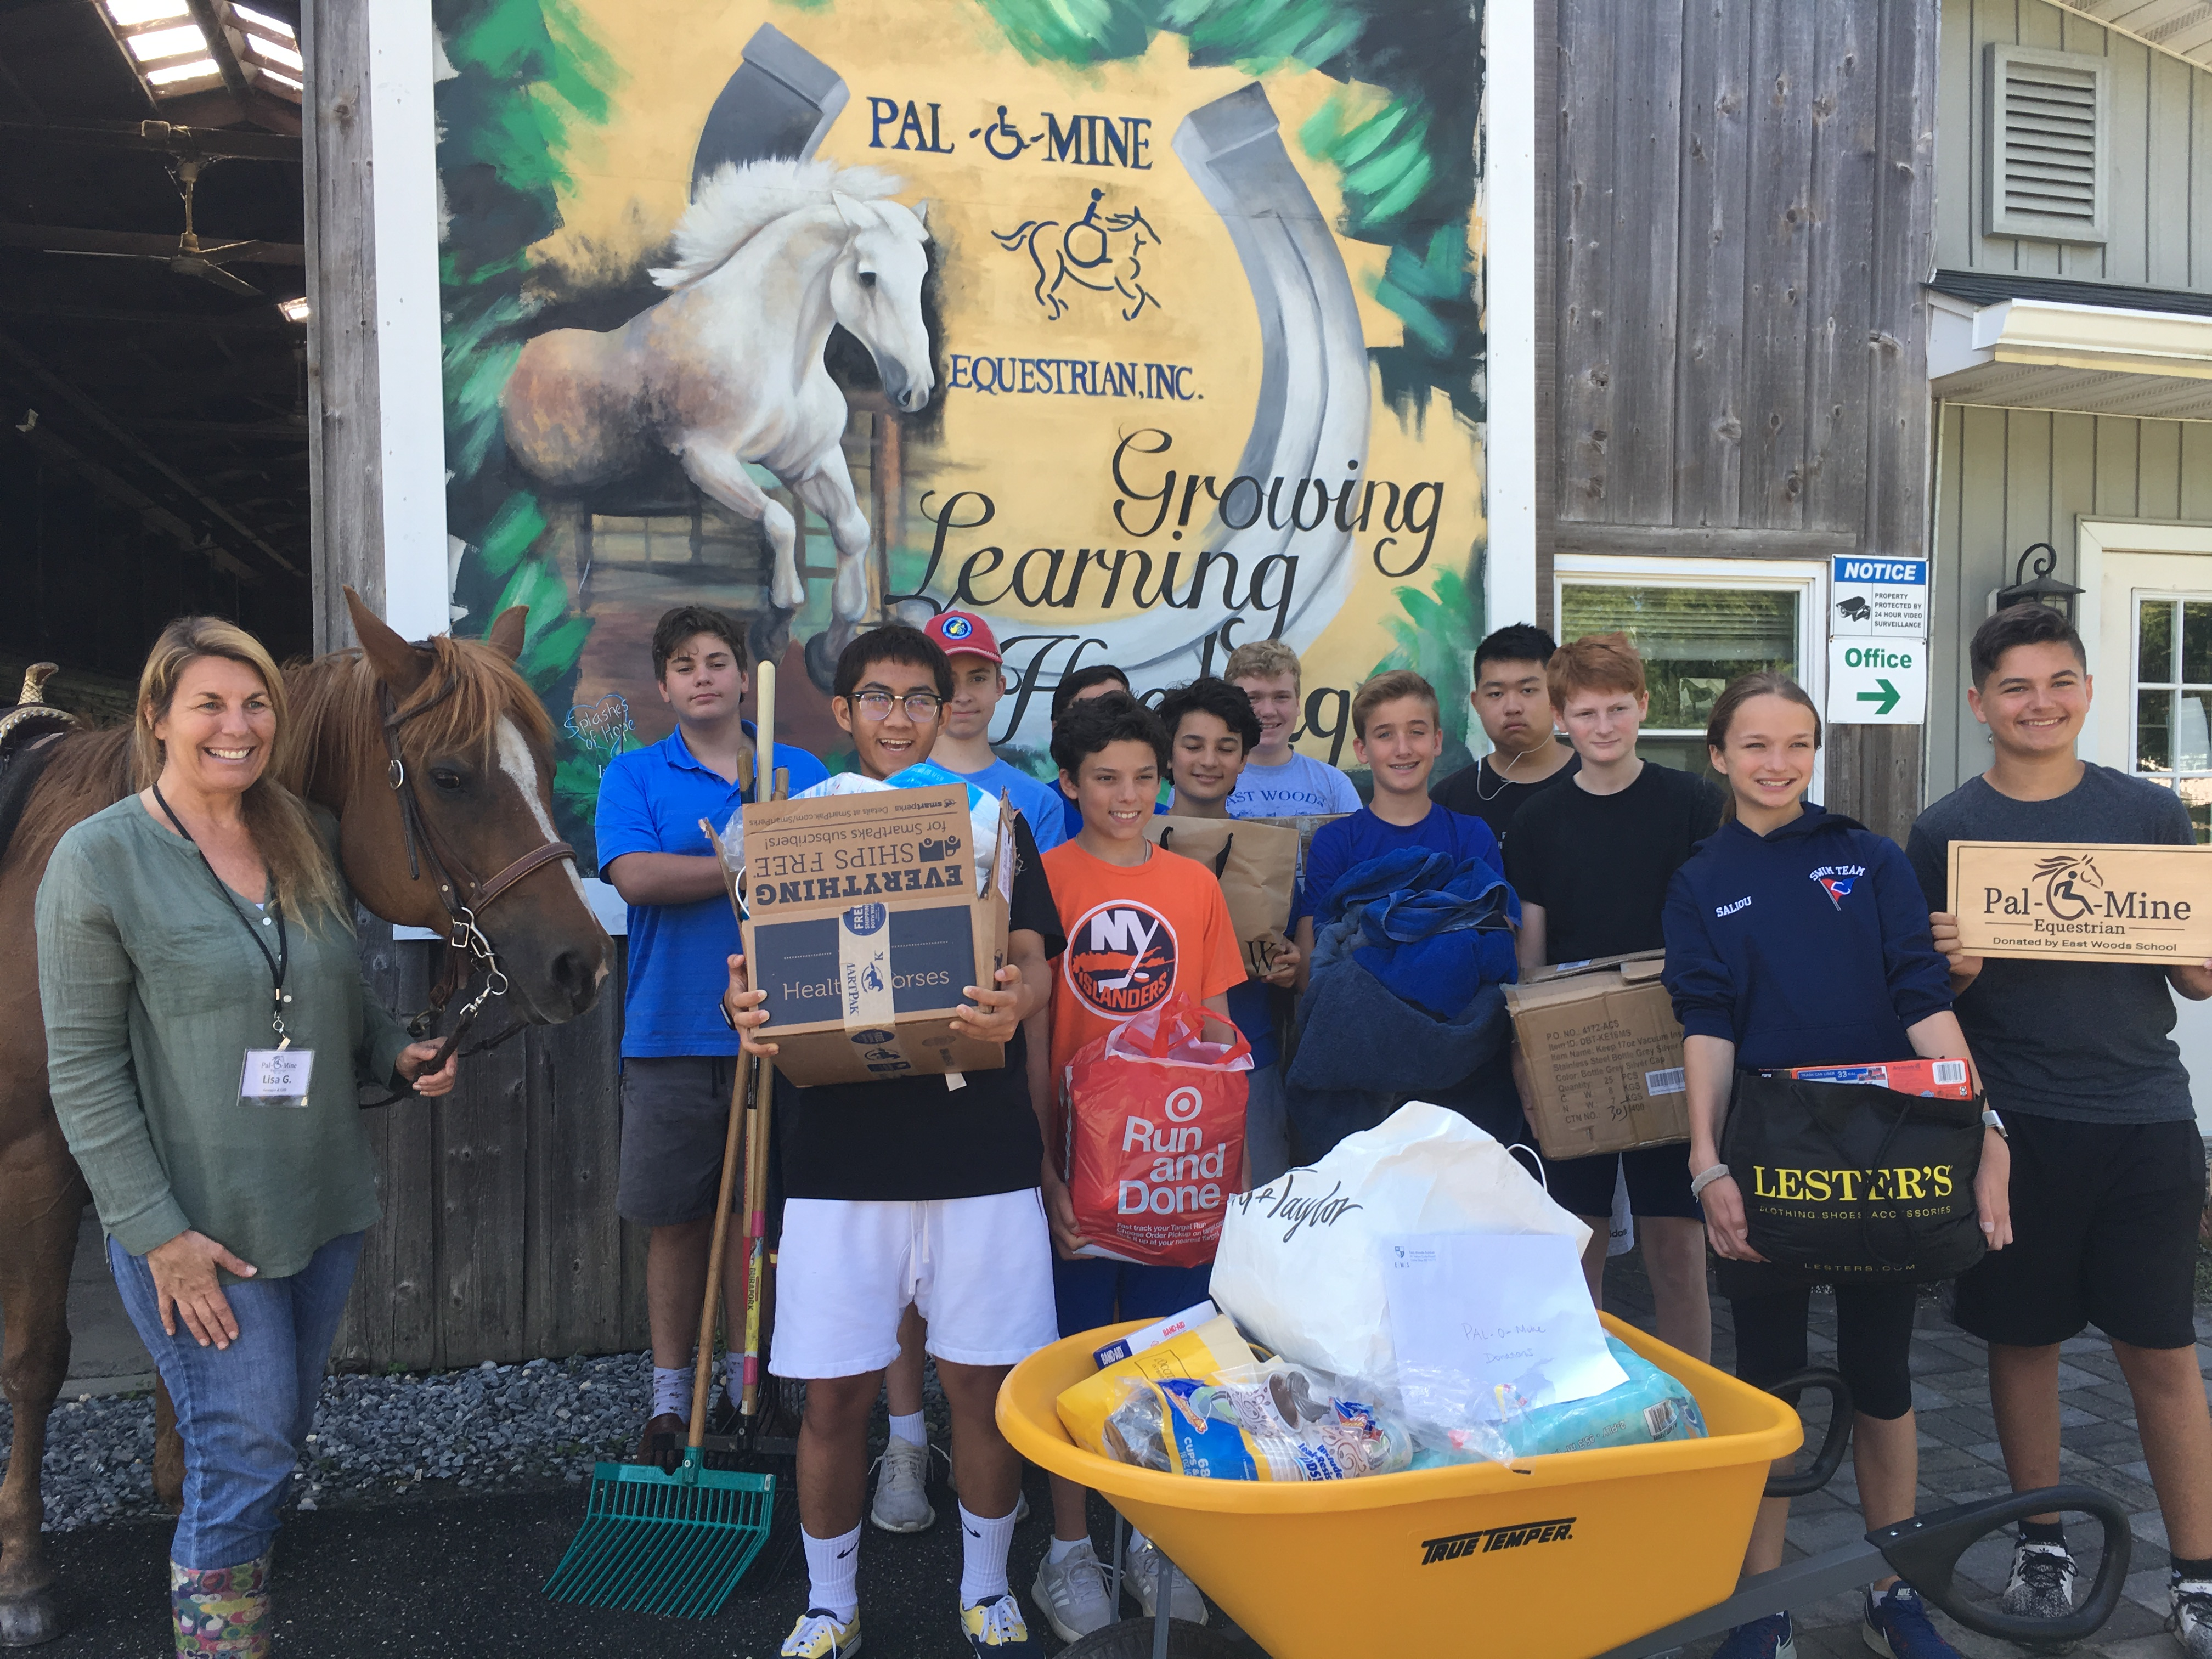 East Woods School 8th Graders Choose to Support Pal-O-Mine in a Yearlong Leadership Project